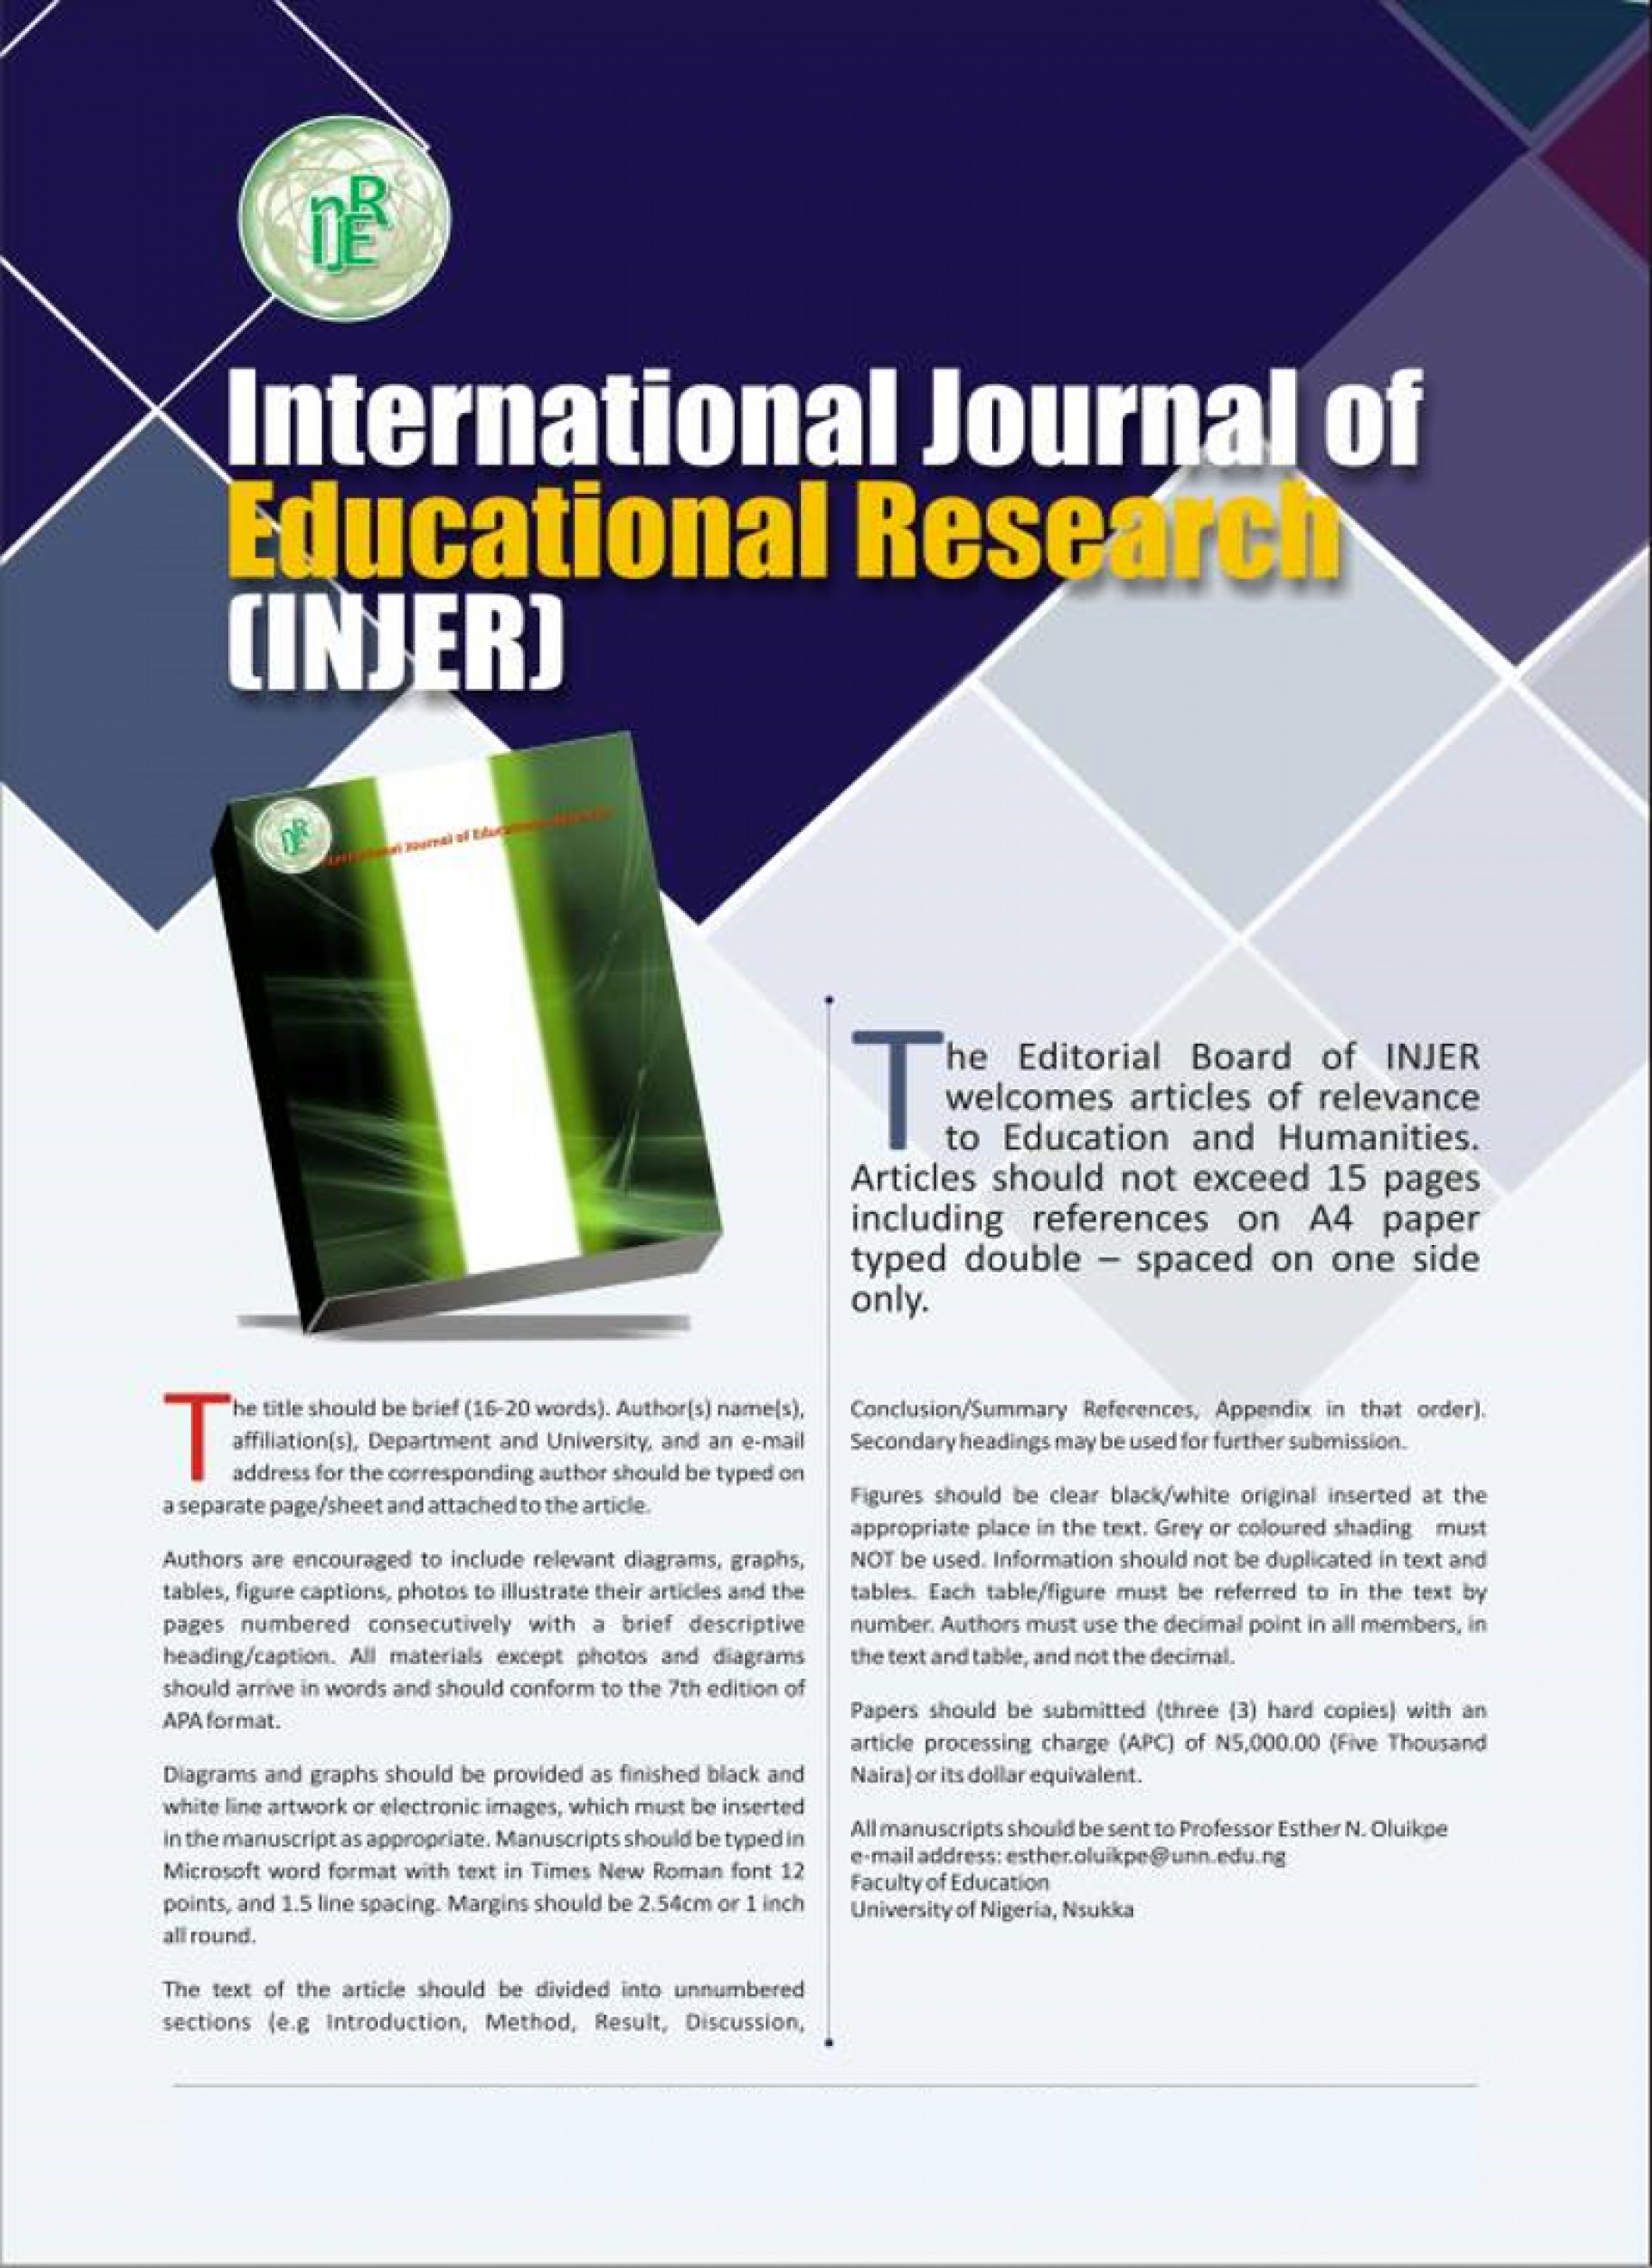 013 Injer Flyer X Educational Researchs Stupendous Research Papers Psychology Pdf 1920